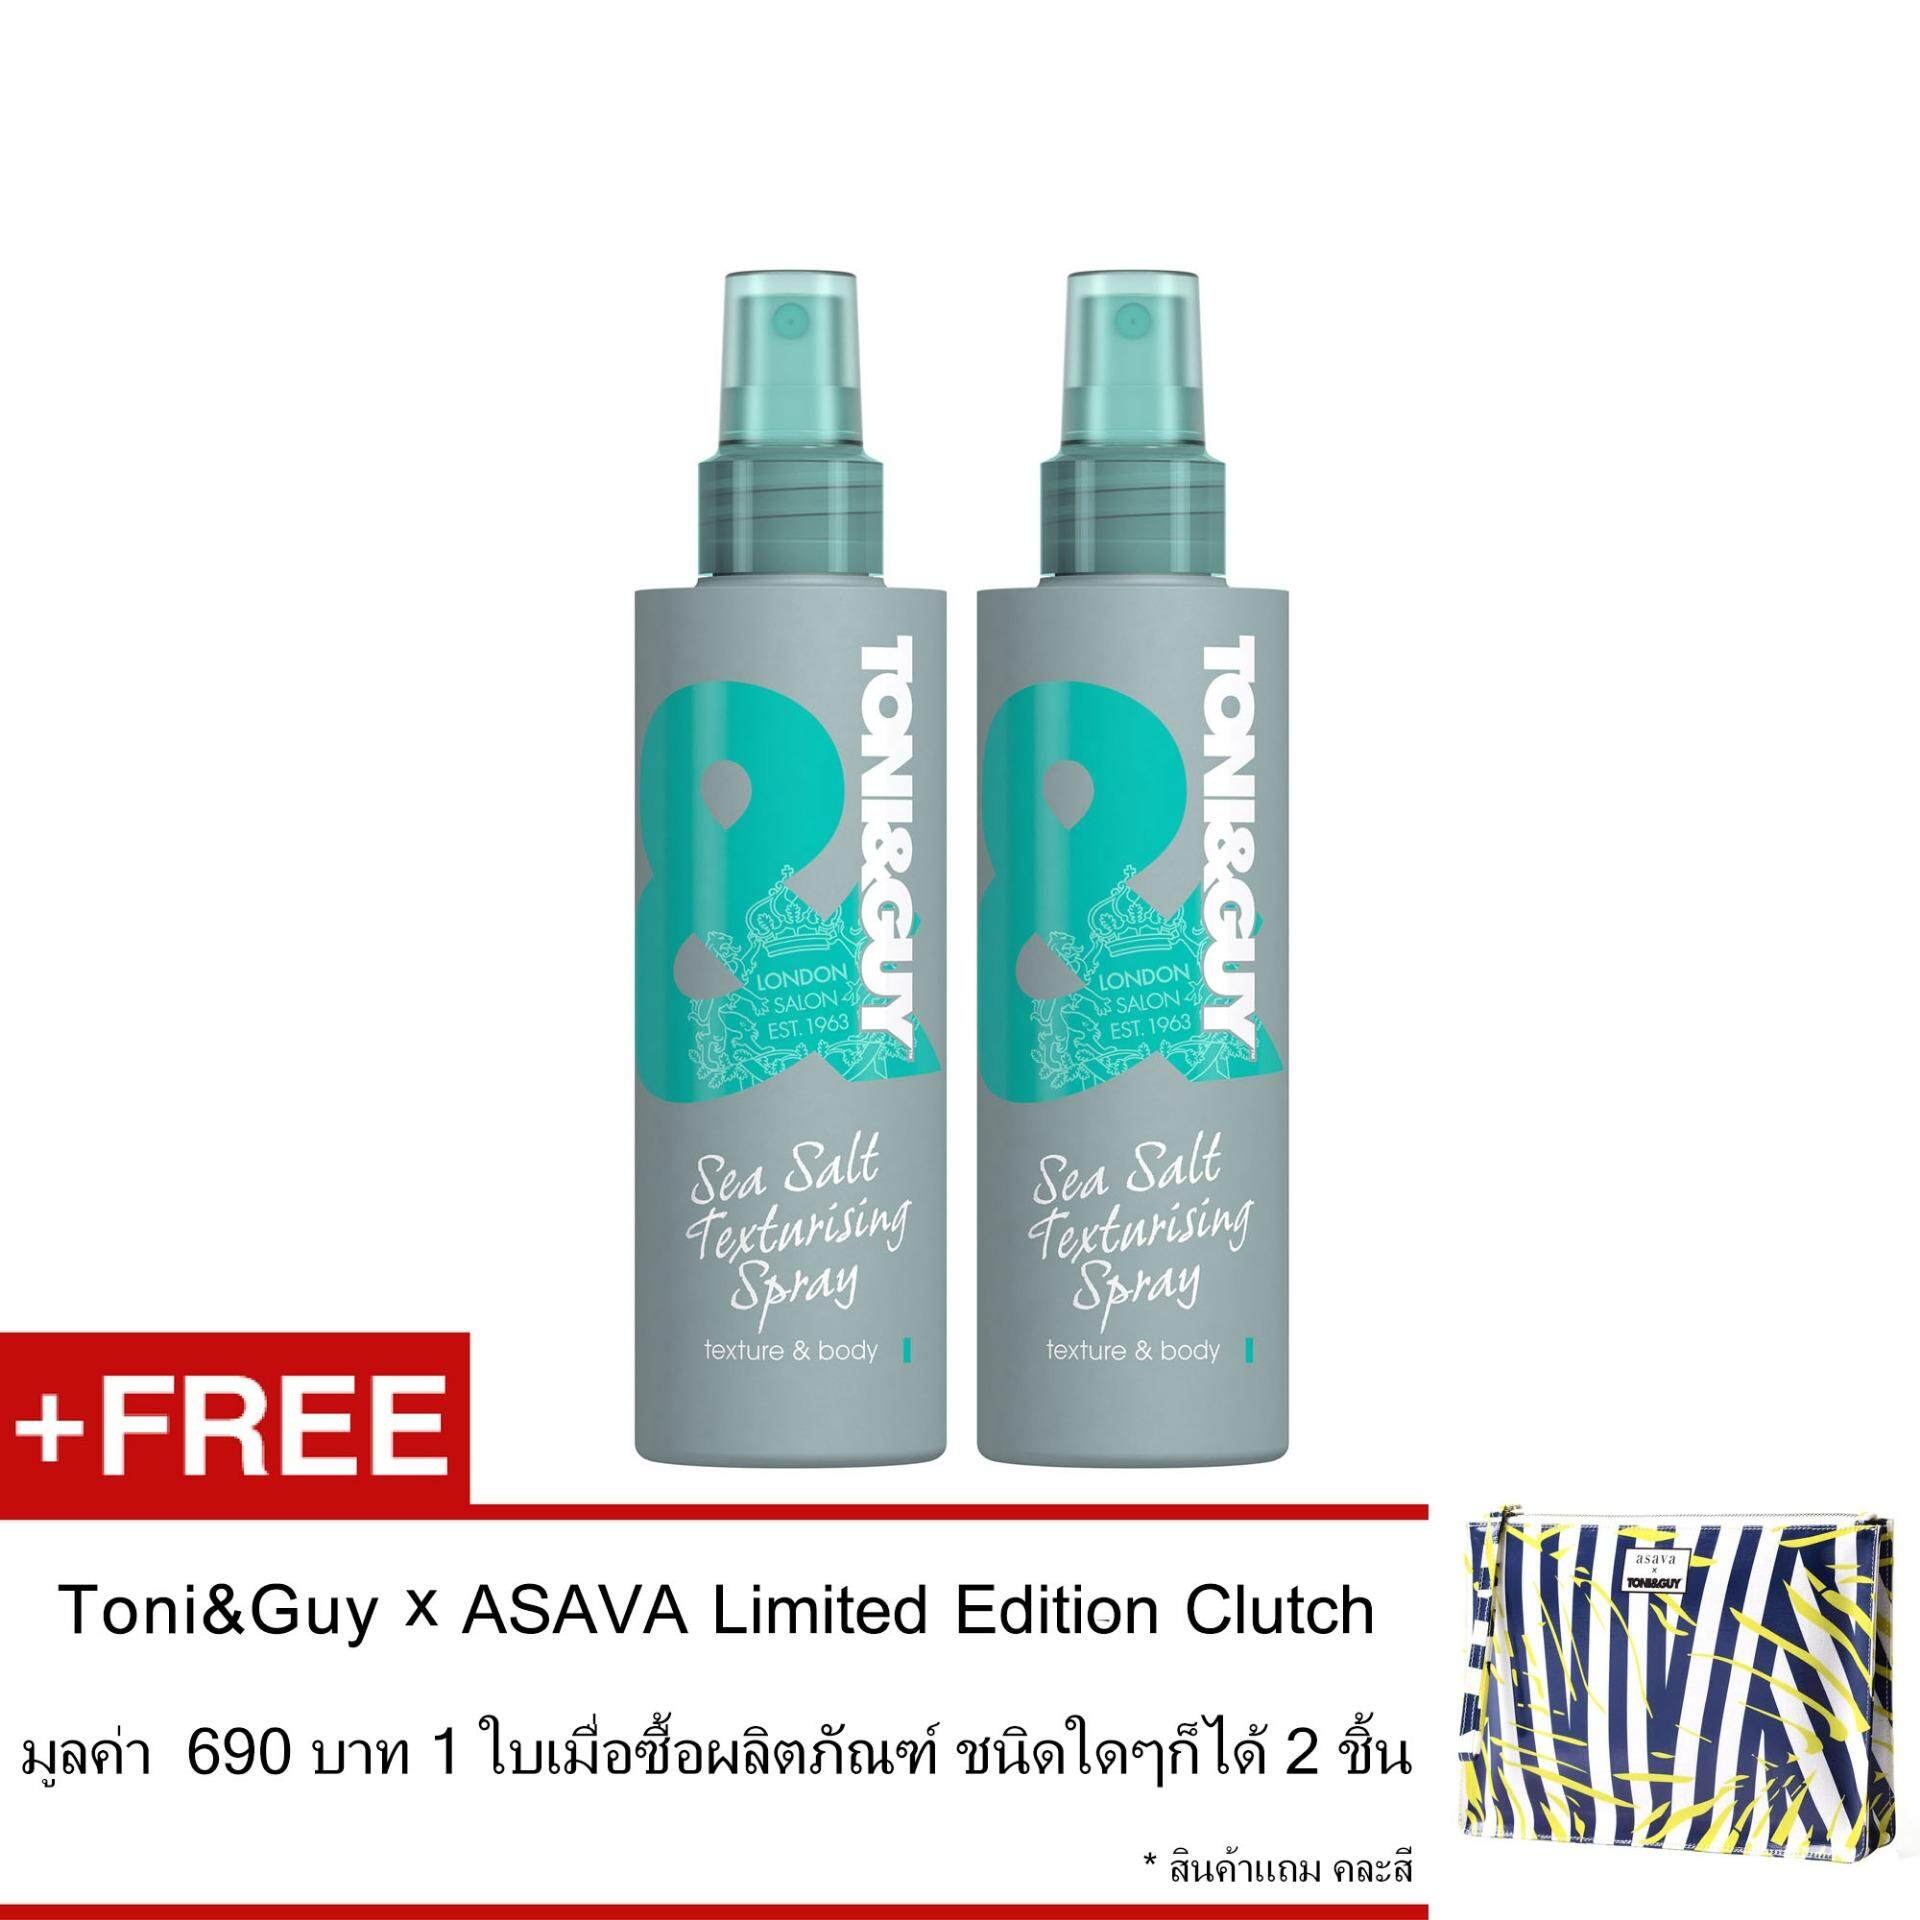 ขาย Set Toni Guy Sea Salt Texturising Spray 200Ml X 2 Free Clutch ใน ไทย